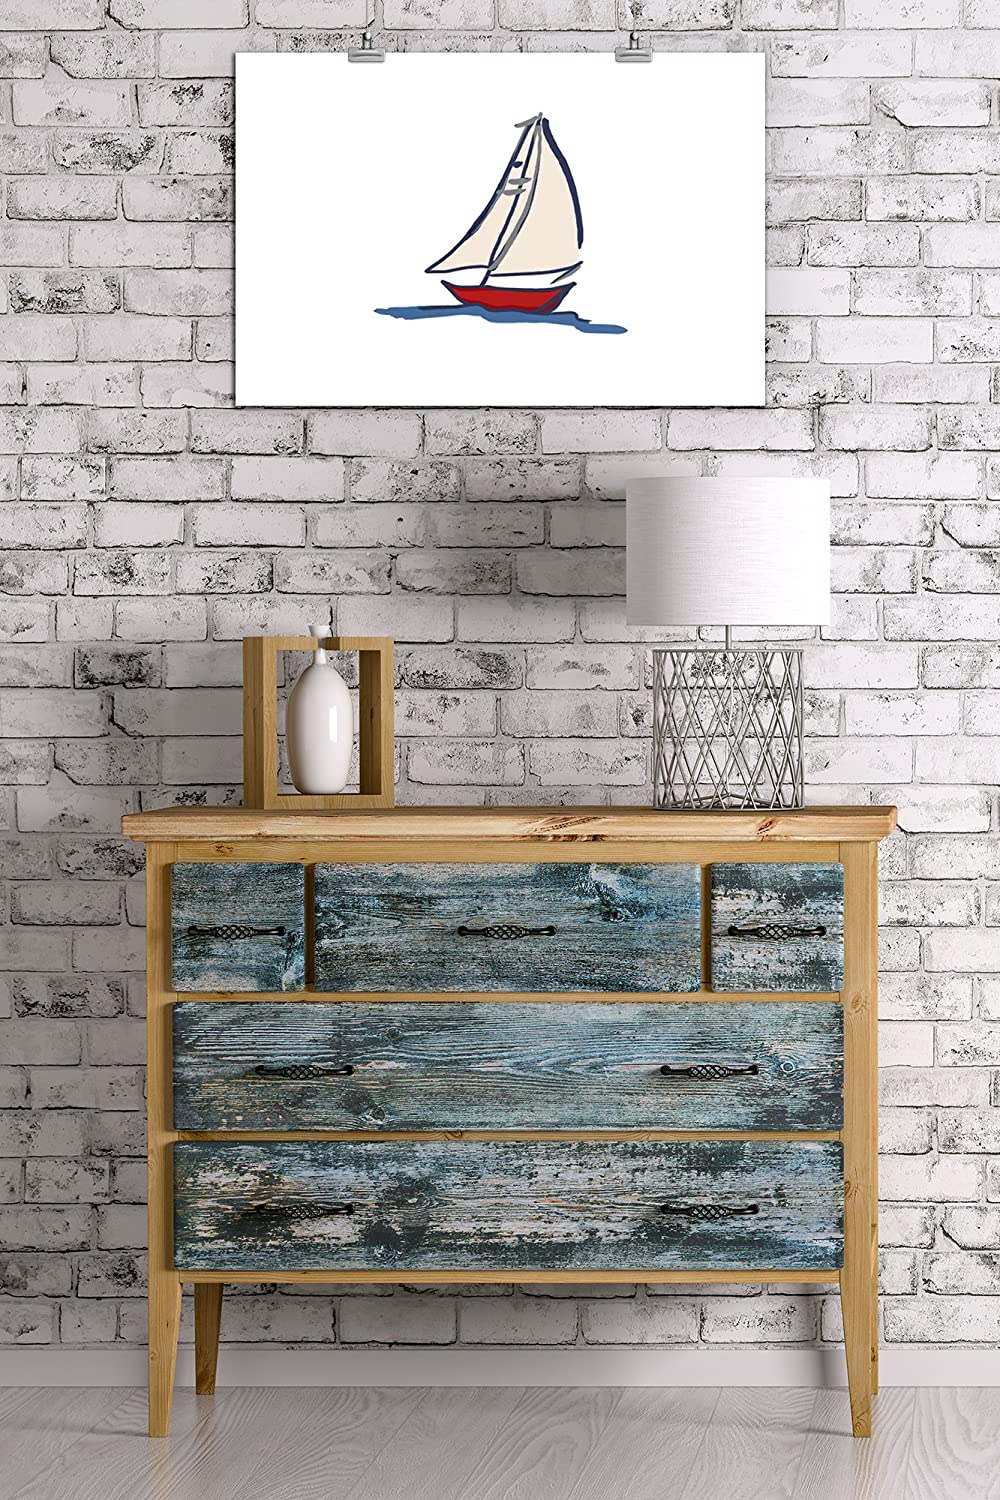 Sailboat 36x54 Giclee Gallery Print, Wall Decor Travel Poster Icon